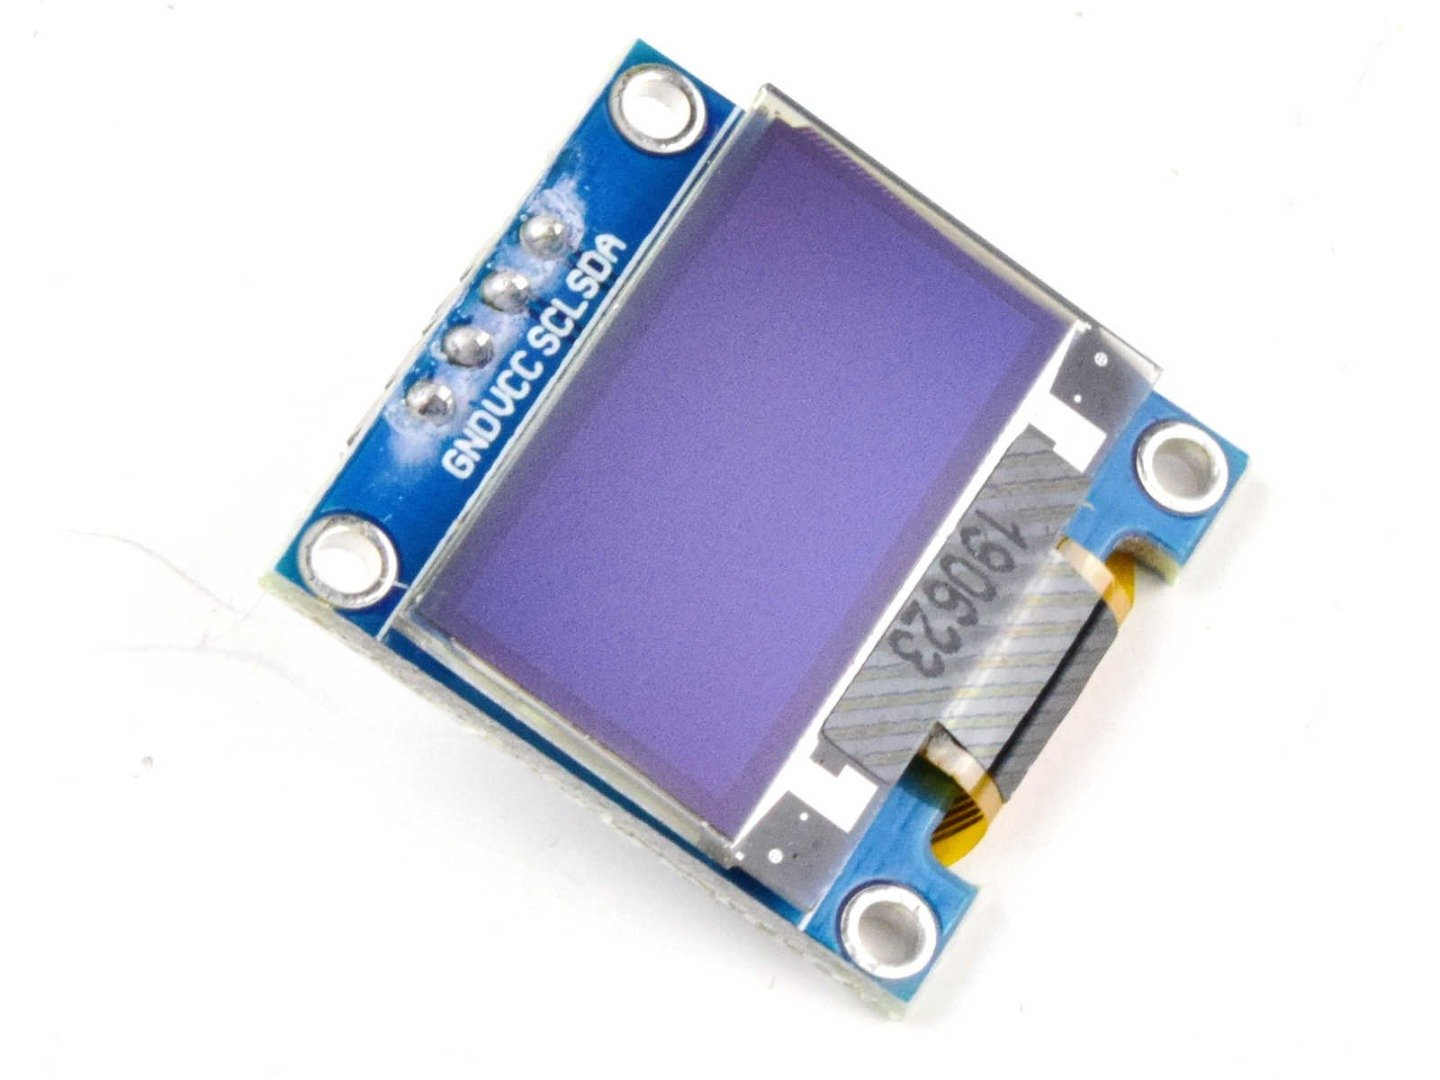 OLED 128×64 Pixel, I2C, 0.96 inch, SSD1306 SH1106, 3-5V (100% compatible with Arduino)